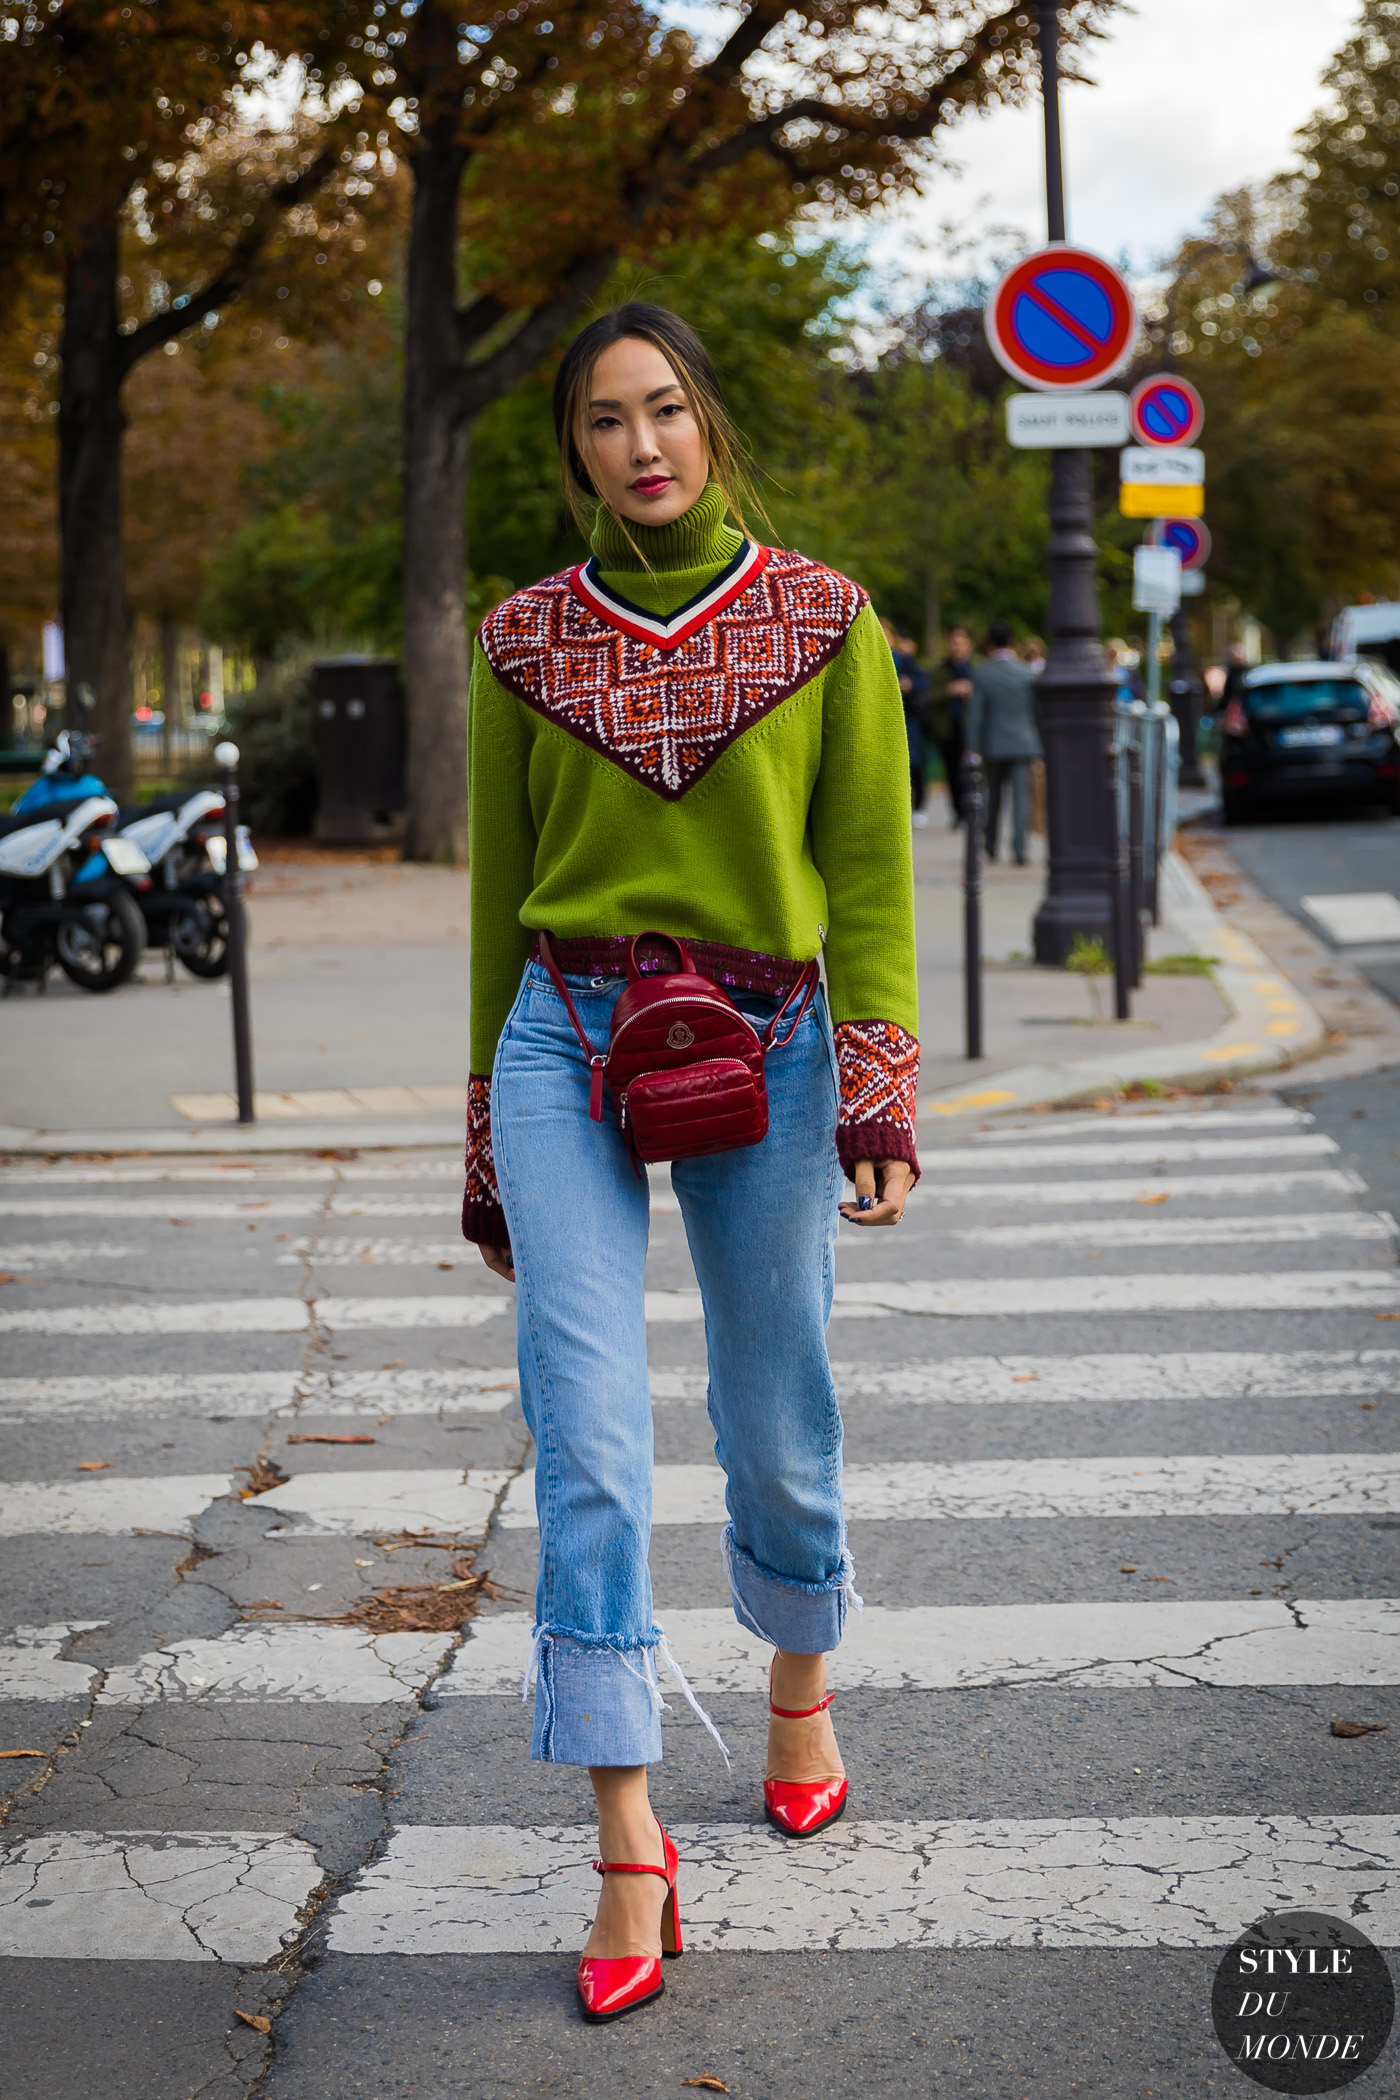 Chriselle Lim by STYLEDUMONDE Street Style Fashion Photography_48A3684